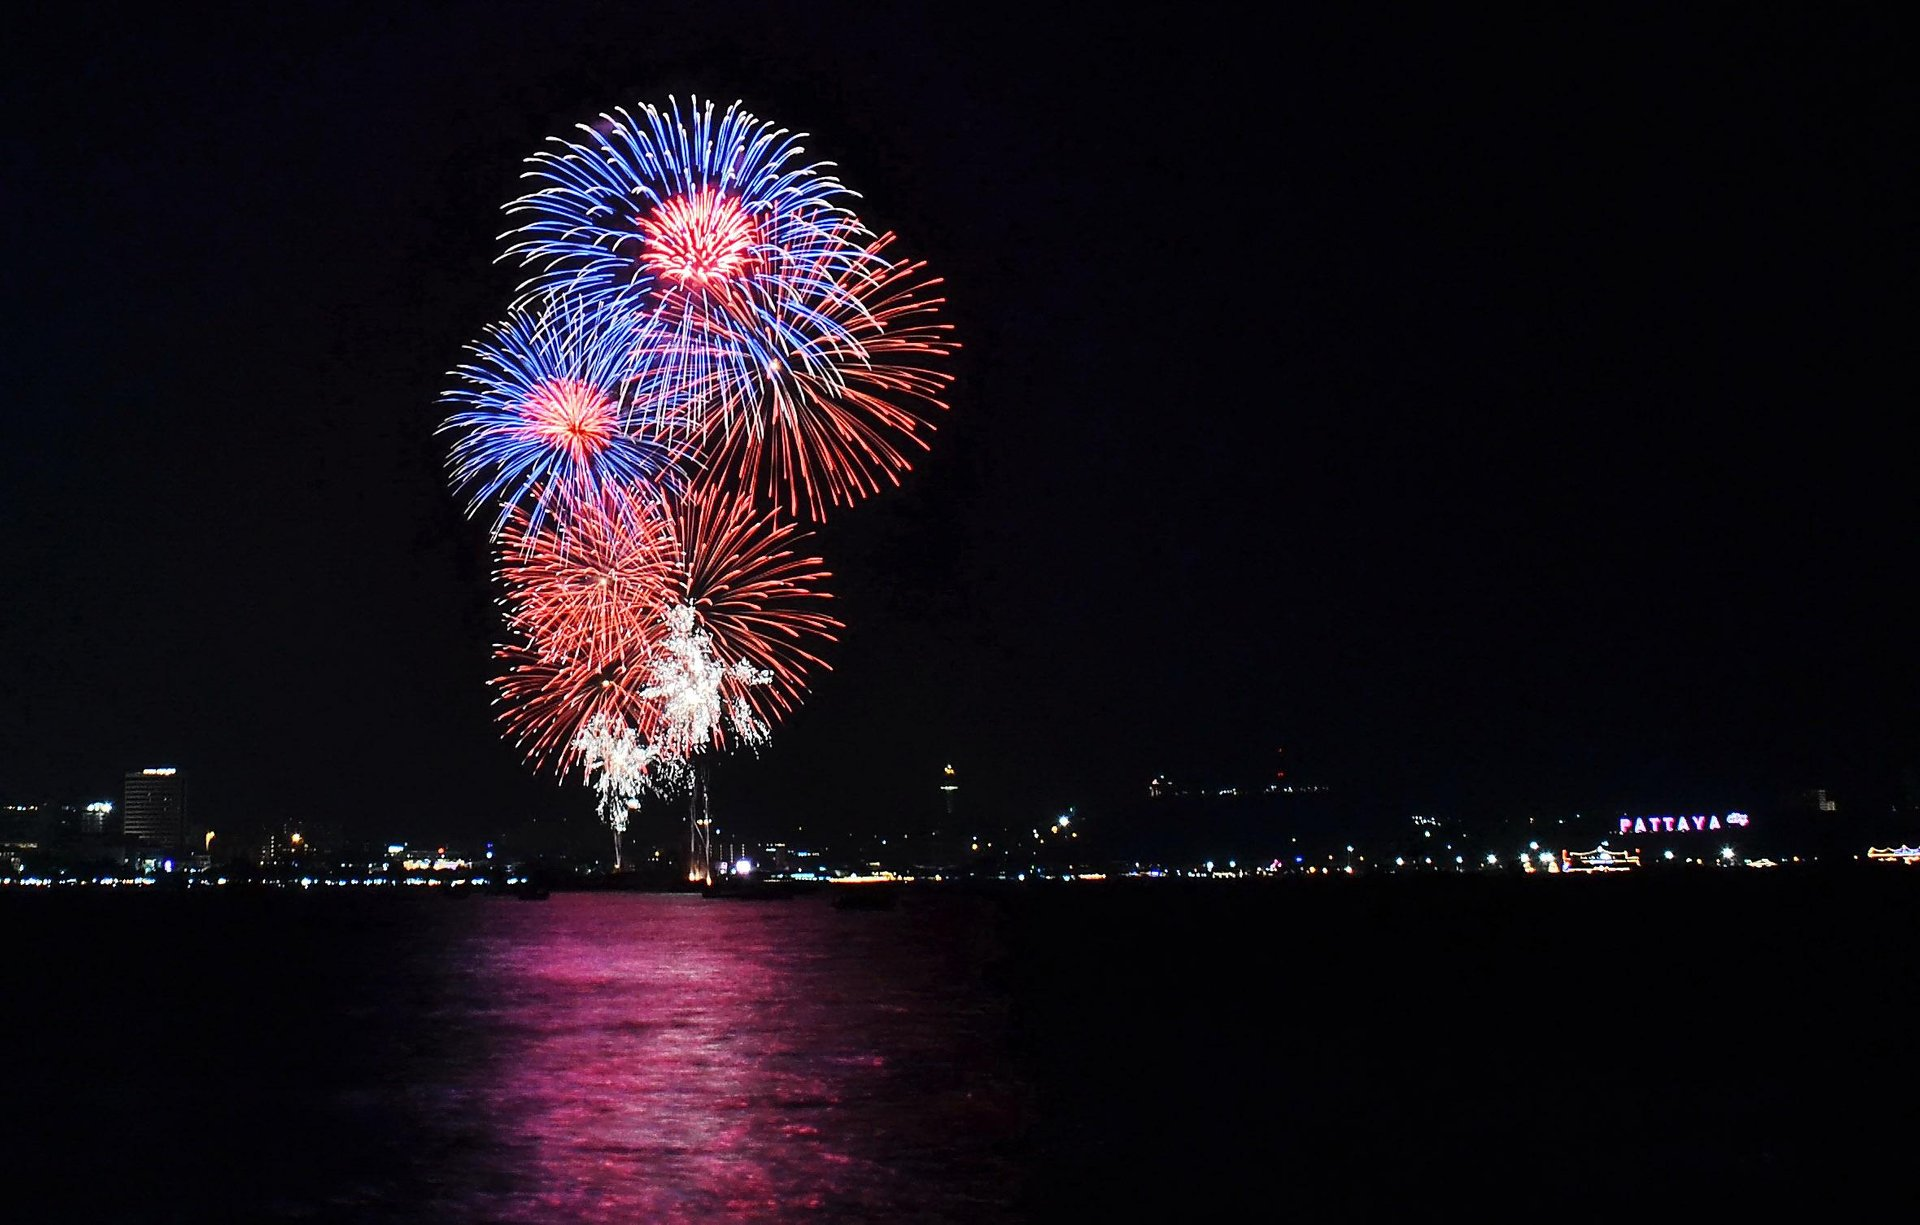 Pattaya International Fireworks Festival in Thailand 2019 - Best Time